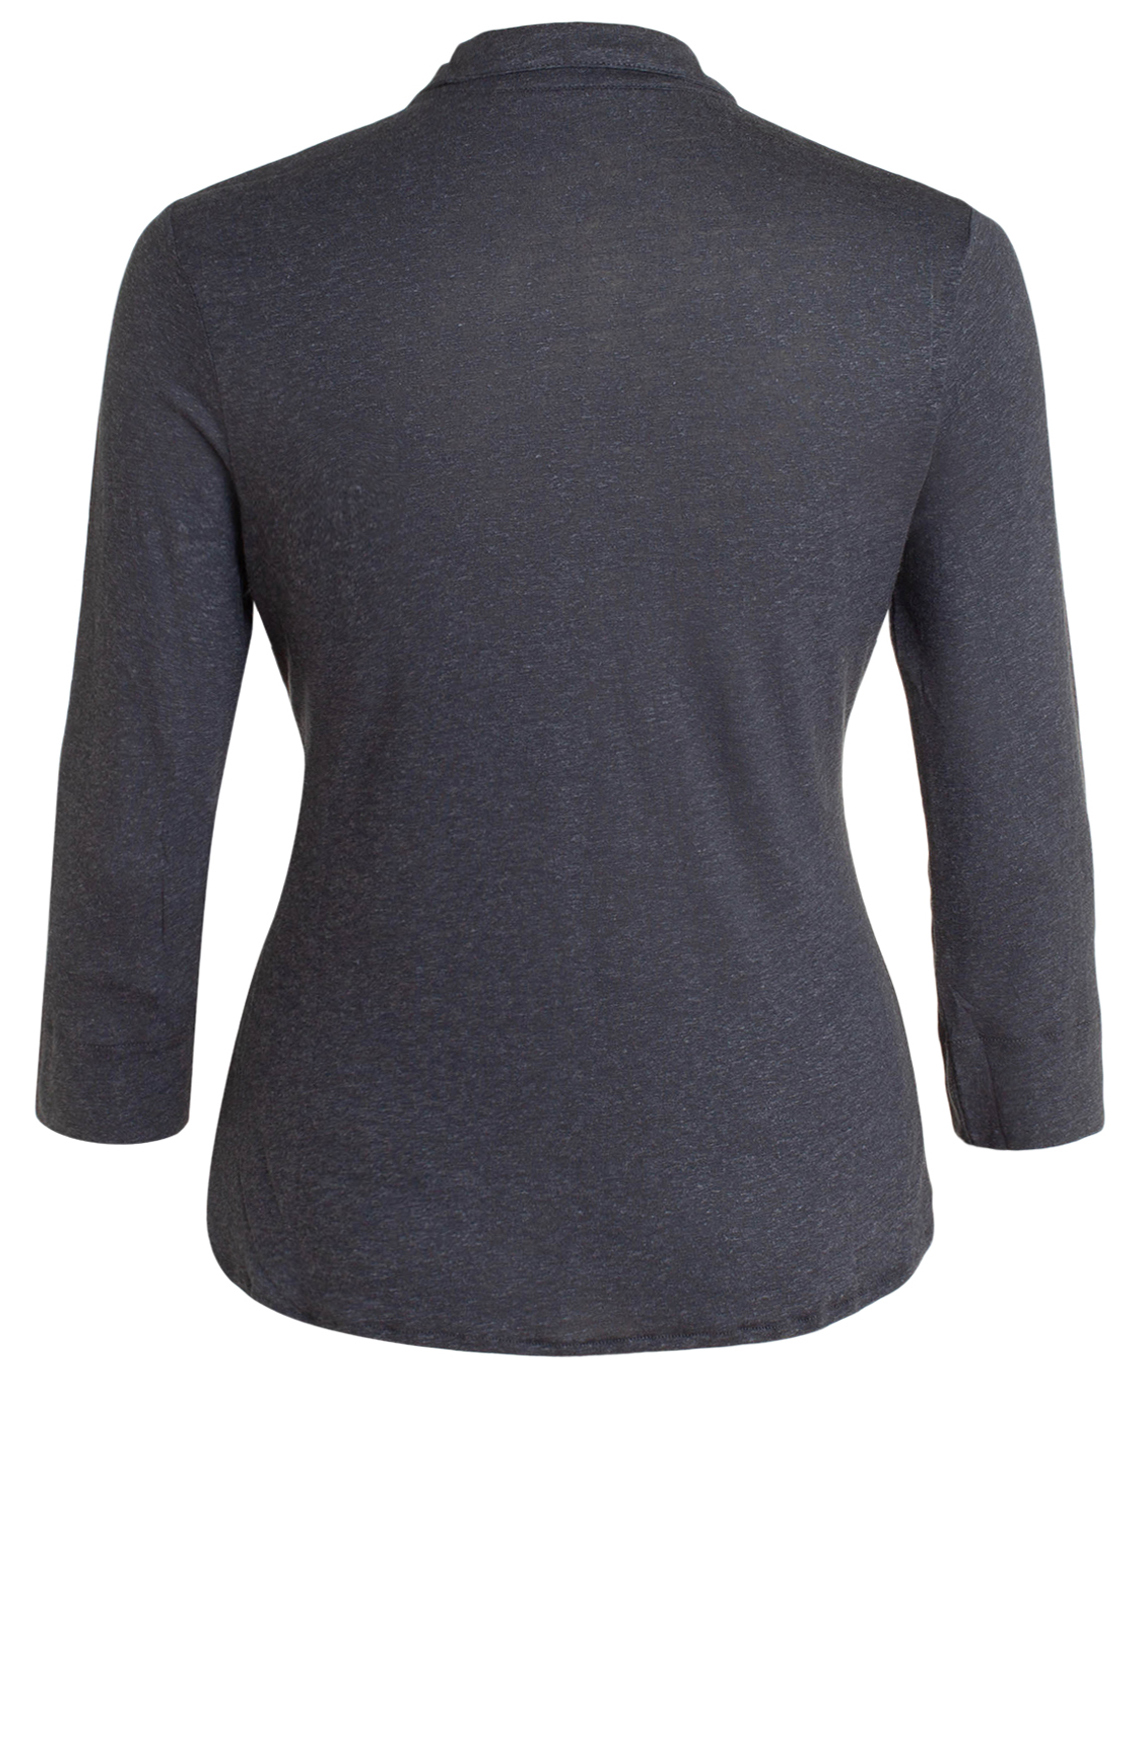 Moscow Dames Blouse Blauw